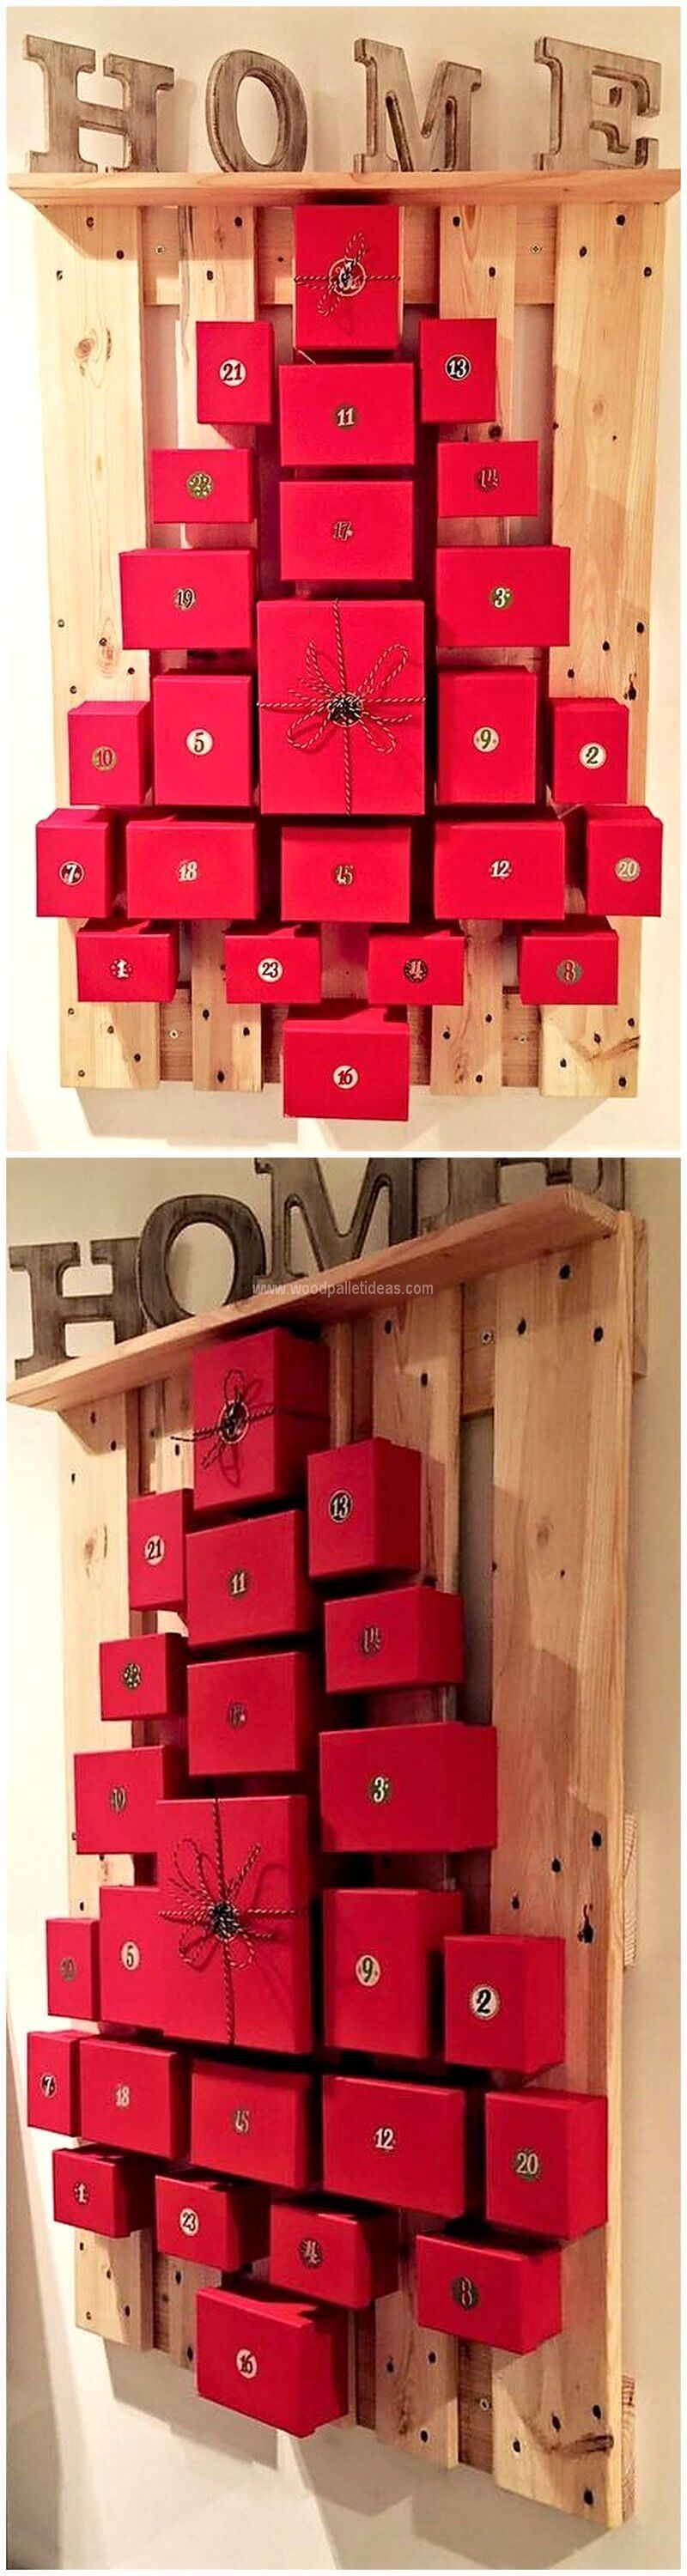 DIY To Try Pallet Ideas at Home #oldpalletsforcrafting